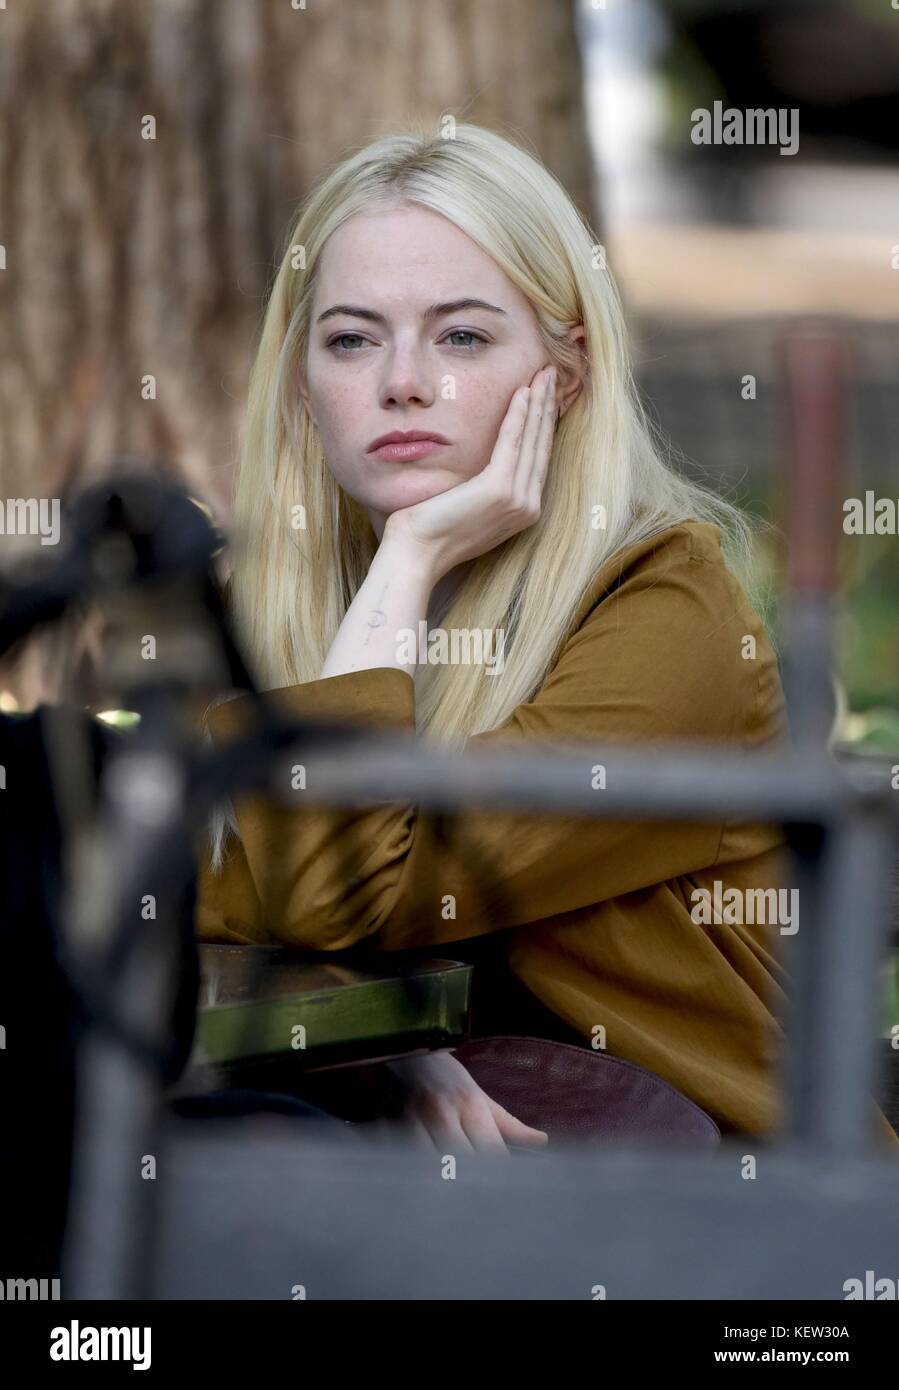 Emma Stone, On Location in Washington Square Park for the TV Series MANIAC out and about for Celebrity Candids  - Stock Image